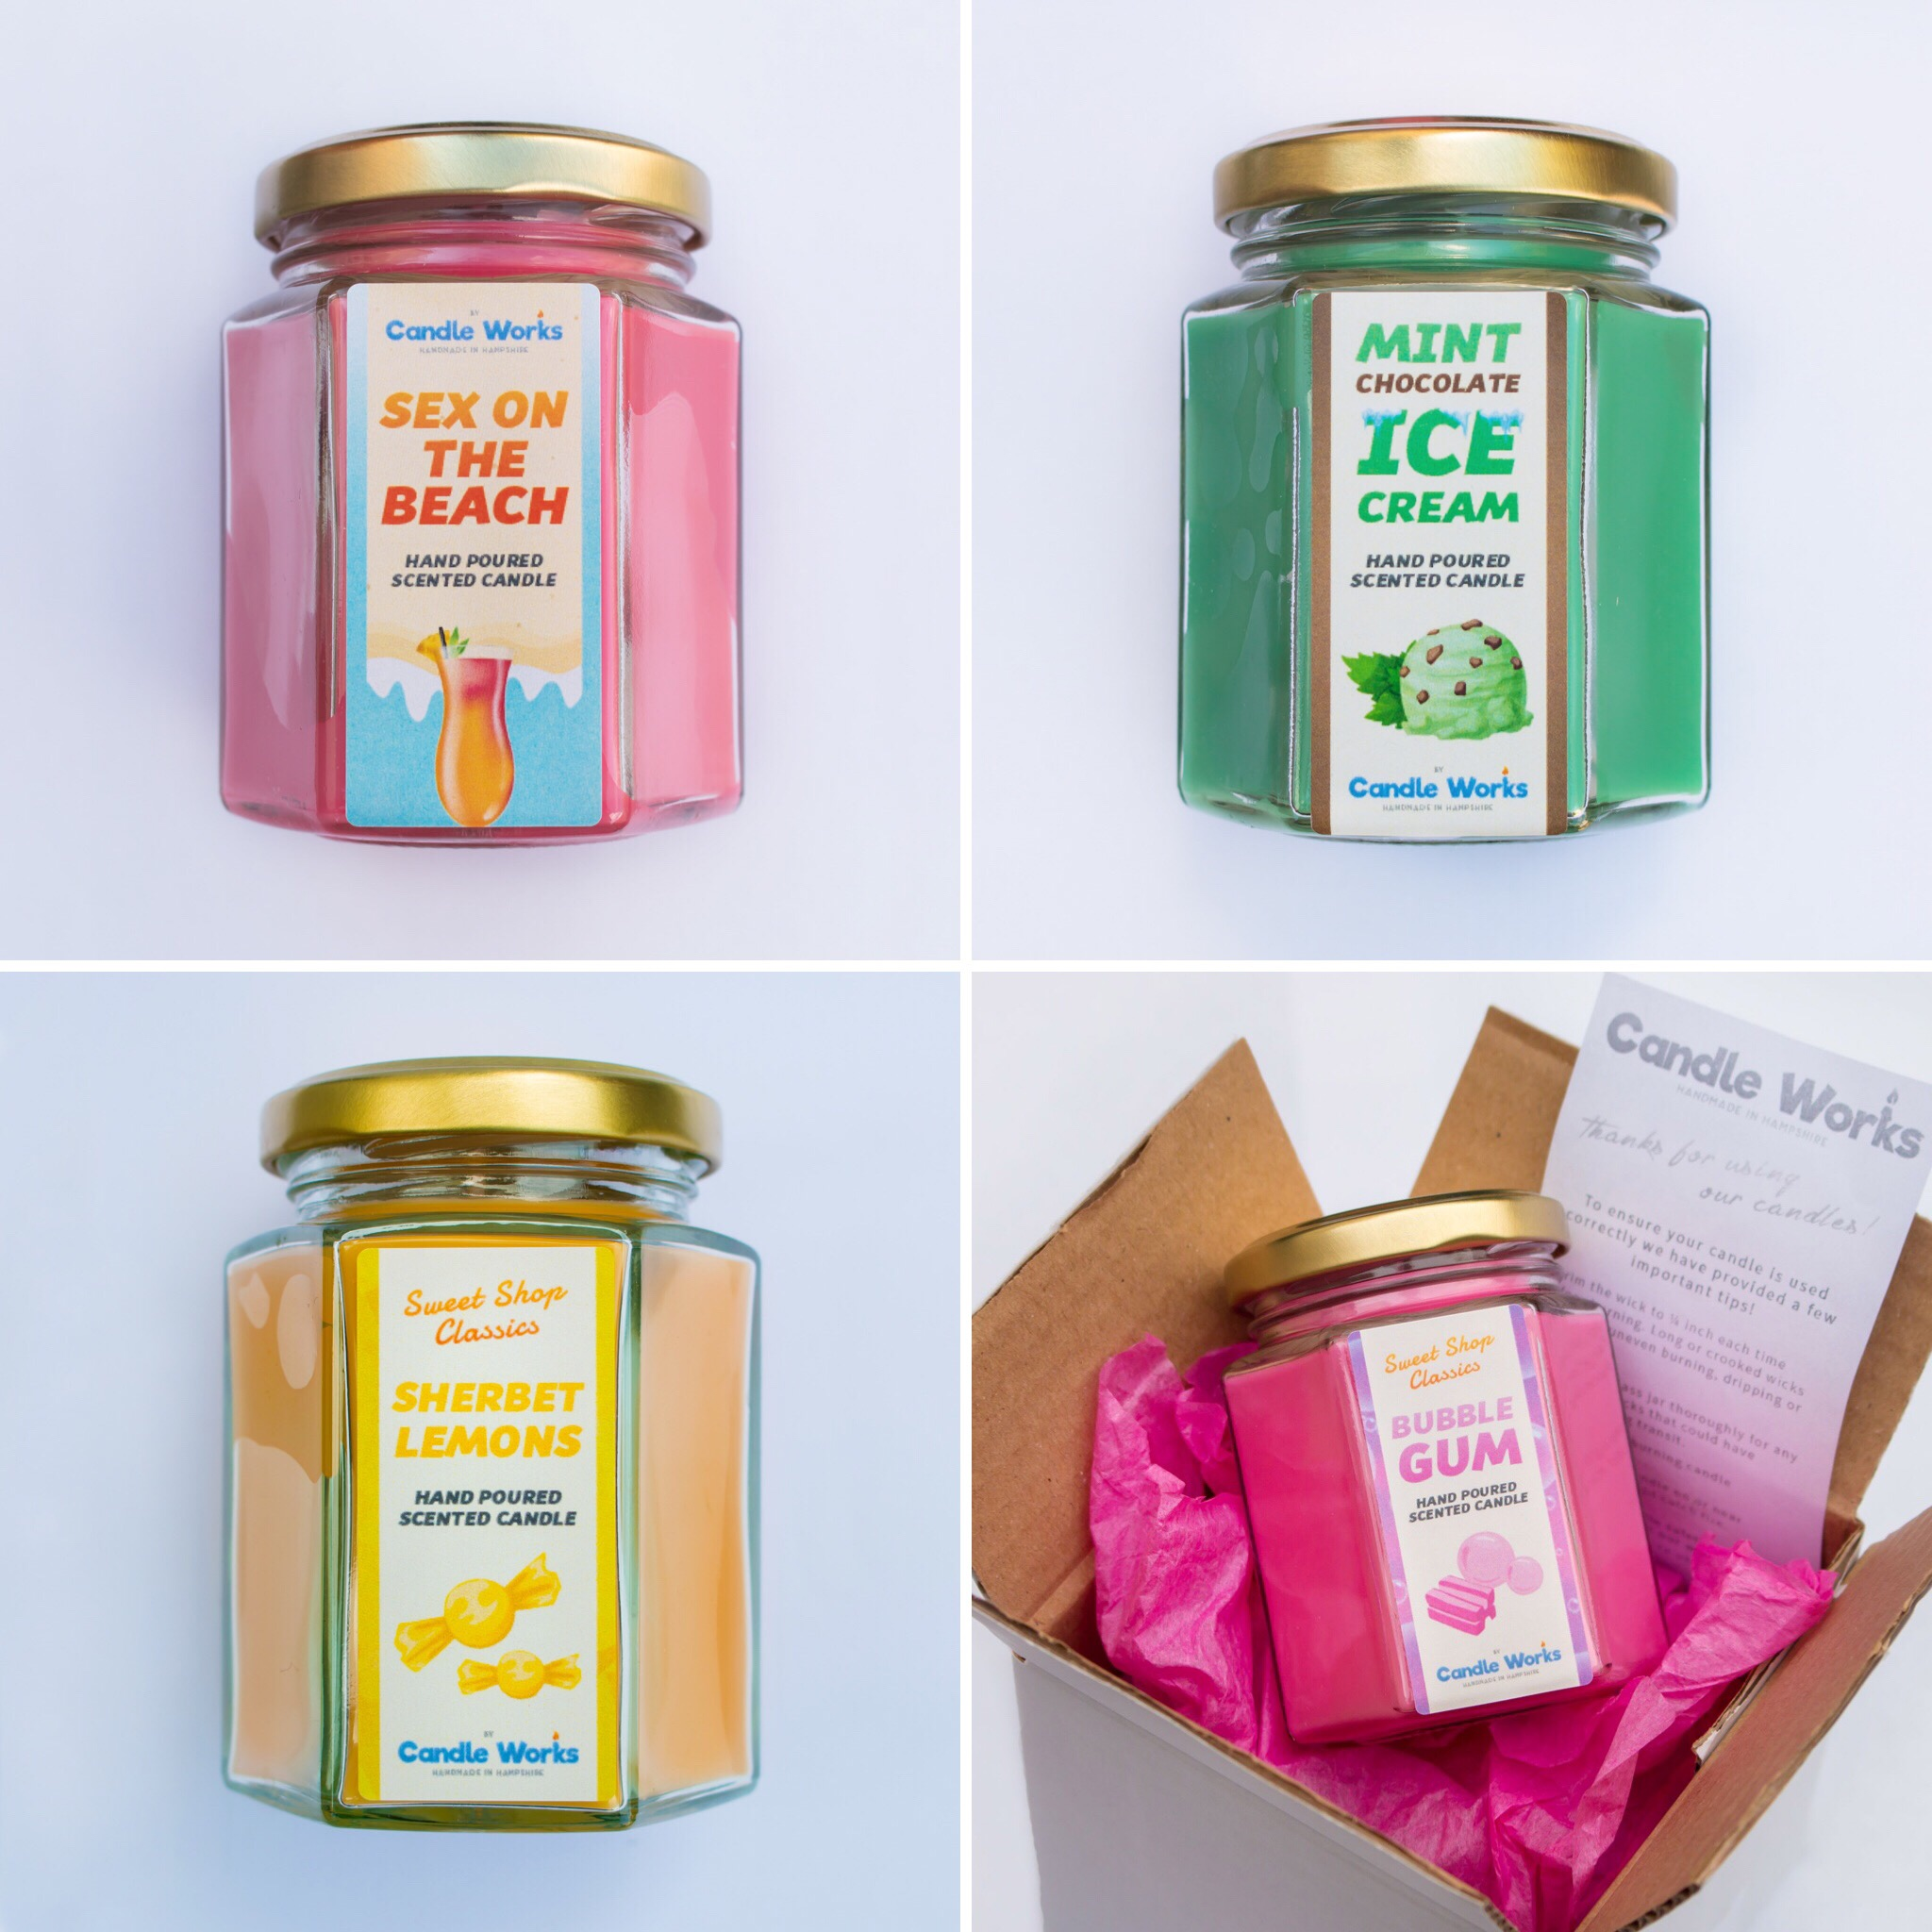 Wholesale - We can provide high quality, handmade candles at a discounted price for a minimum order quantity. This is usually 20 units, however we can discuss your requirements via email beforehand.All items on our store are available as wholesale.Candles & Melts are made to order and can take up to a week to be processed, or longer if a larger shipment is required.Once your wholesale order is completed, we will dispatch it via DPD Next Day Delivery. Timescales will vary depending on your requirements.If you're interested in any wholesale services or would like to become a temp/permanent stockist, get in touch today! Contact UsDownload our 2019 wholesale catalog here.